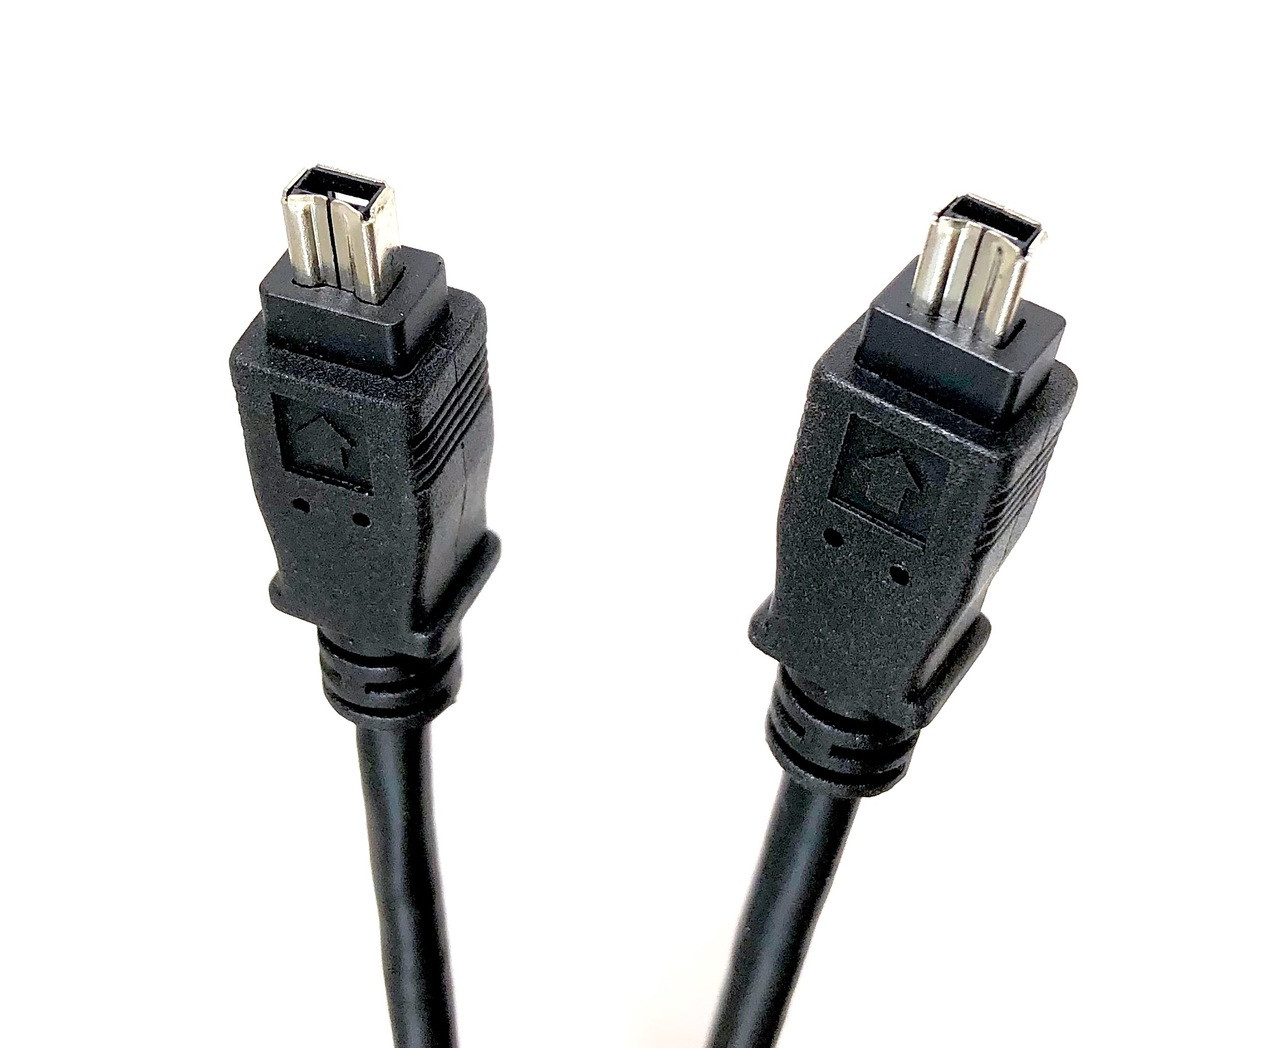 Firewire cable 4 Pin Male to Male - 15ft